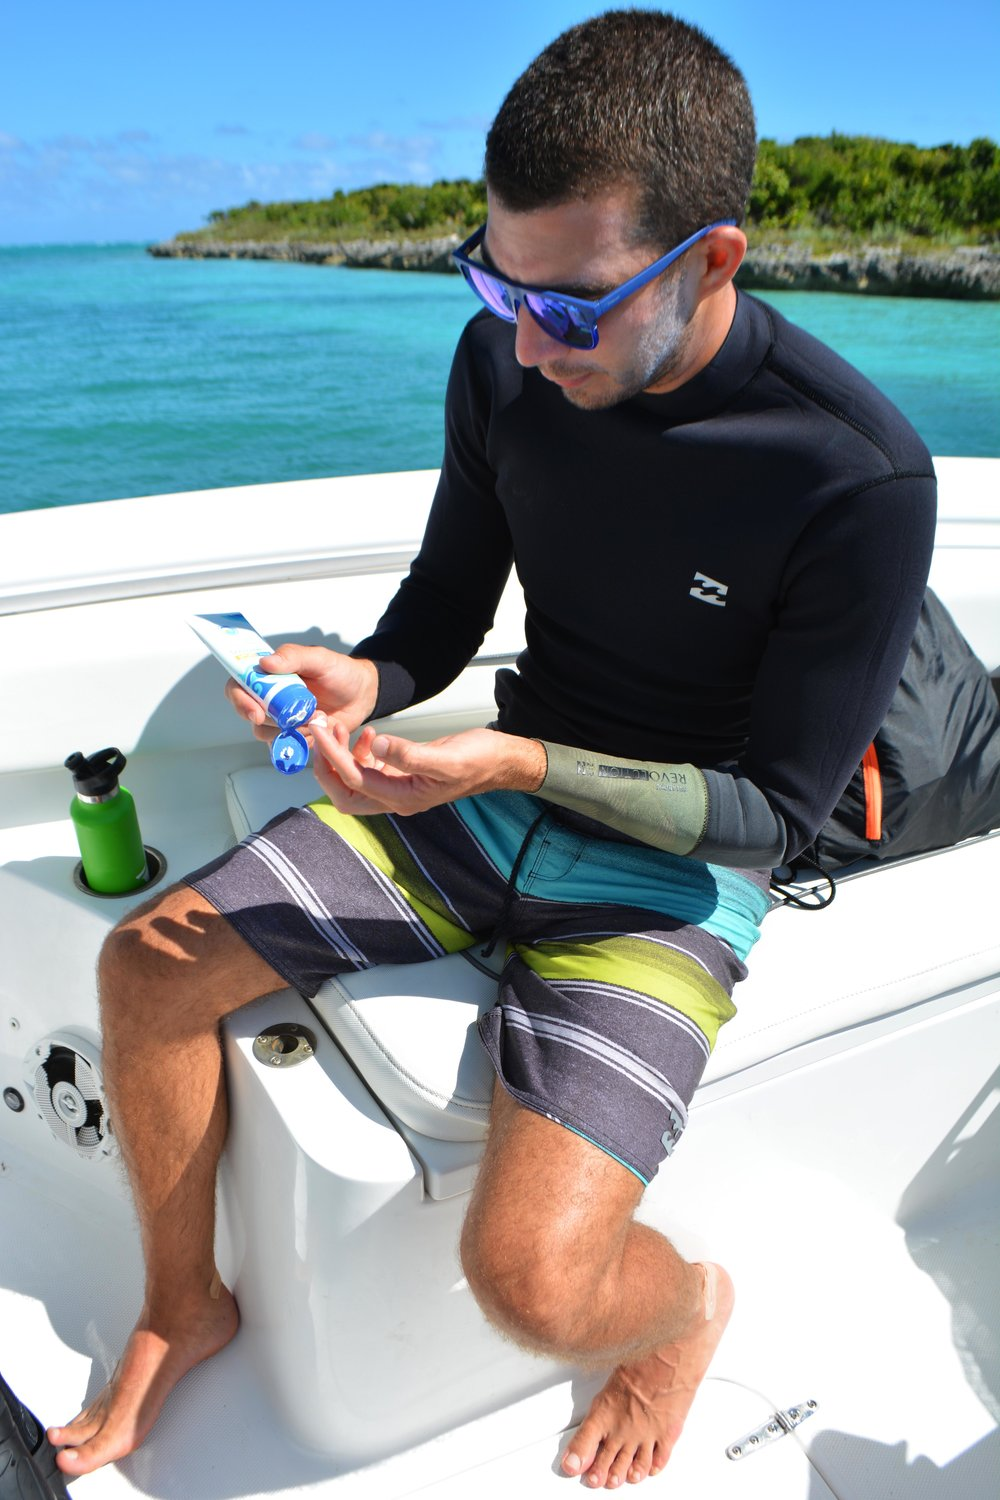 Coral safe sunscreen from    Stream2Sea    was used throughout the expedition